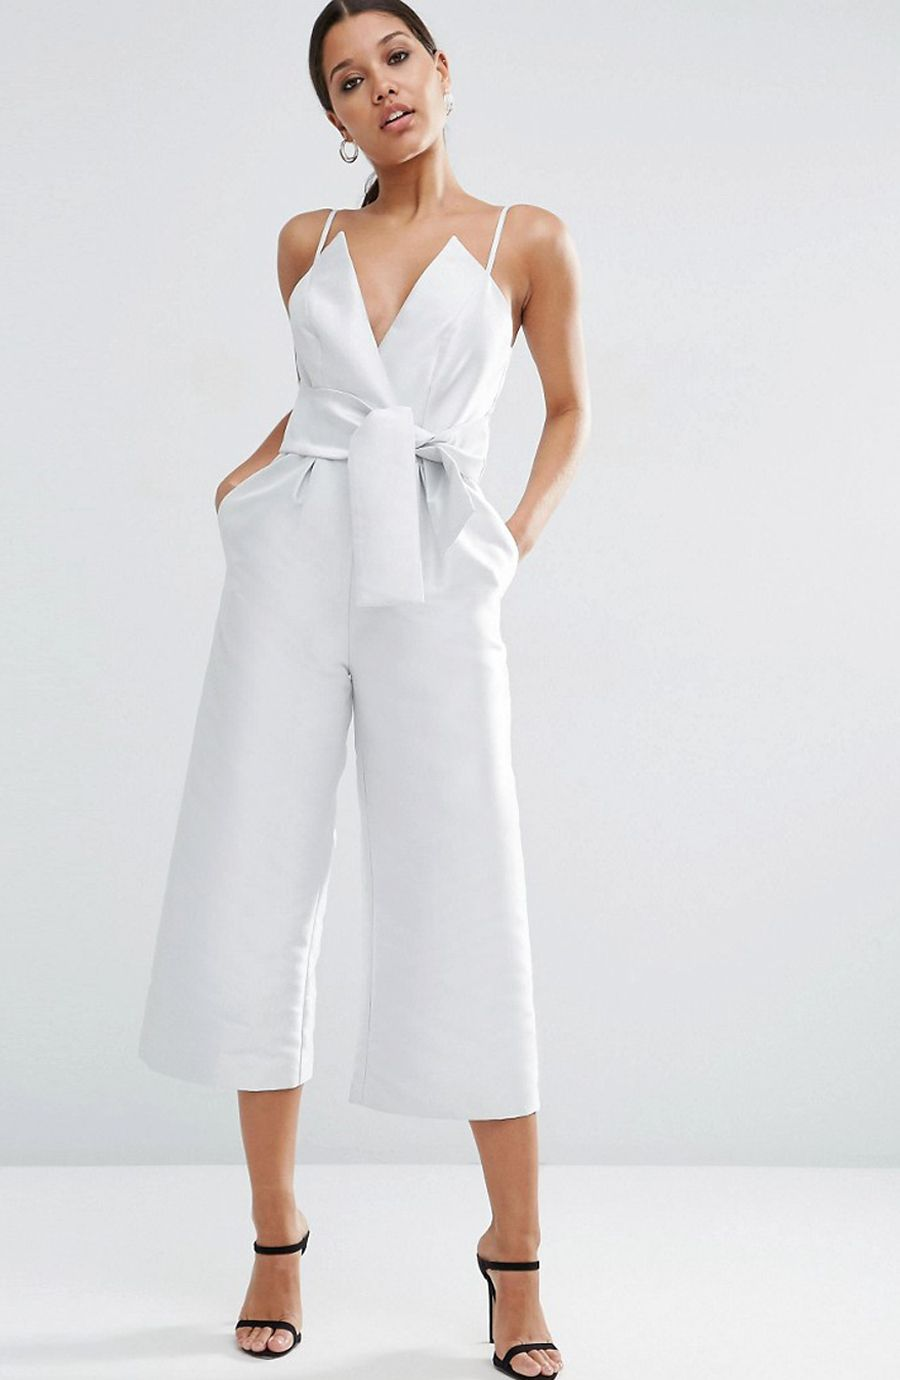 c7d2e360b1f 25 Jumpsuits You Could Totally Get Away With Wearing to a Wedding ...